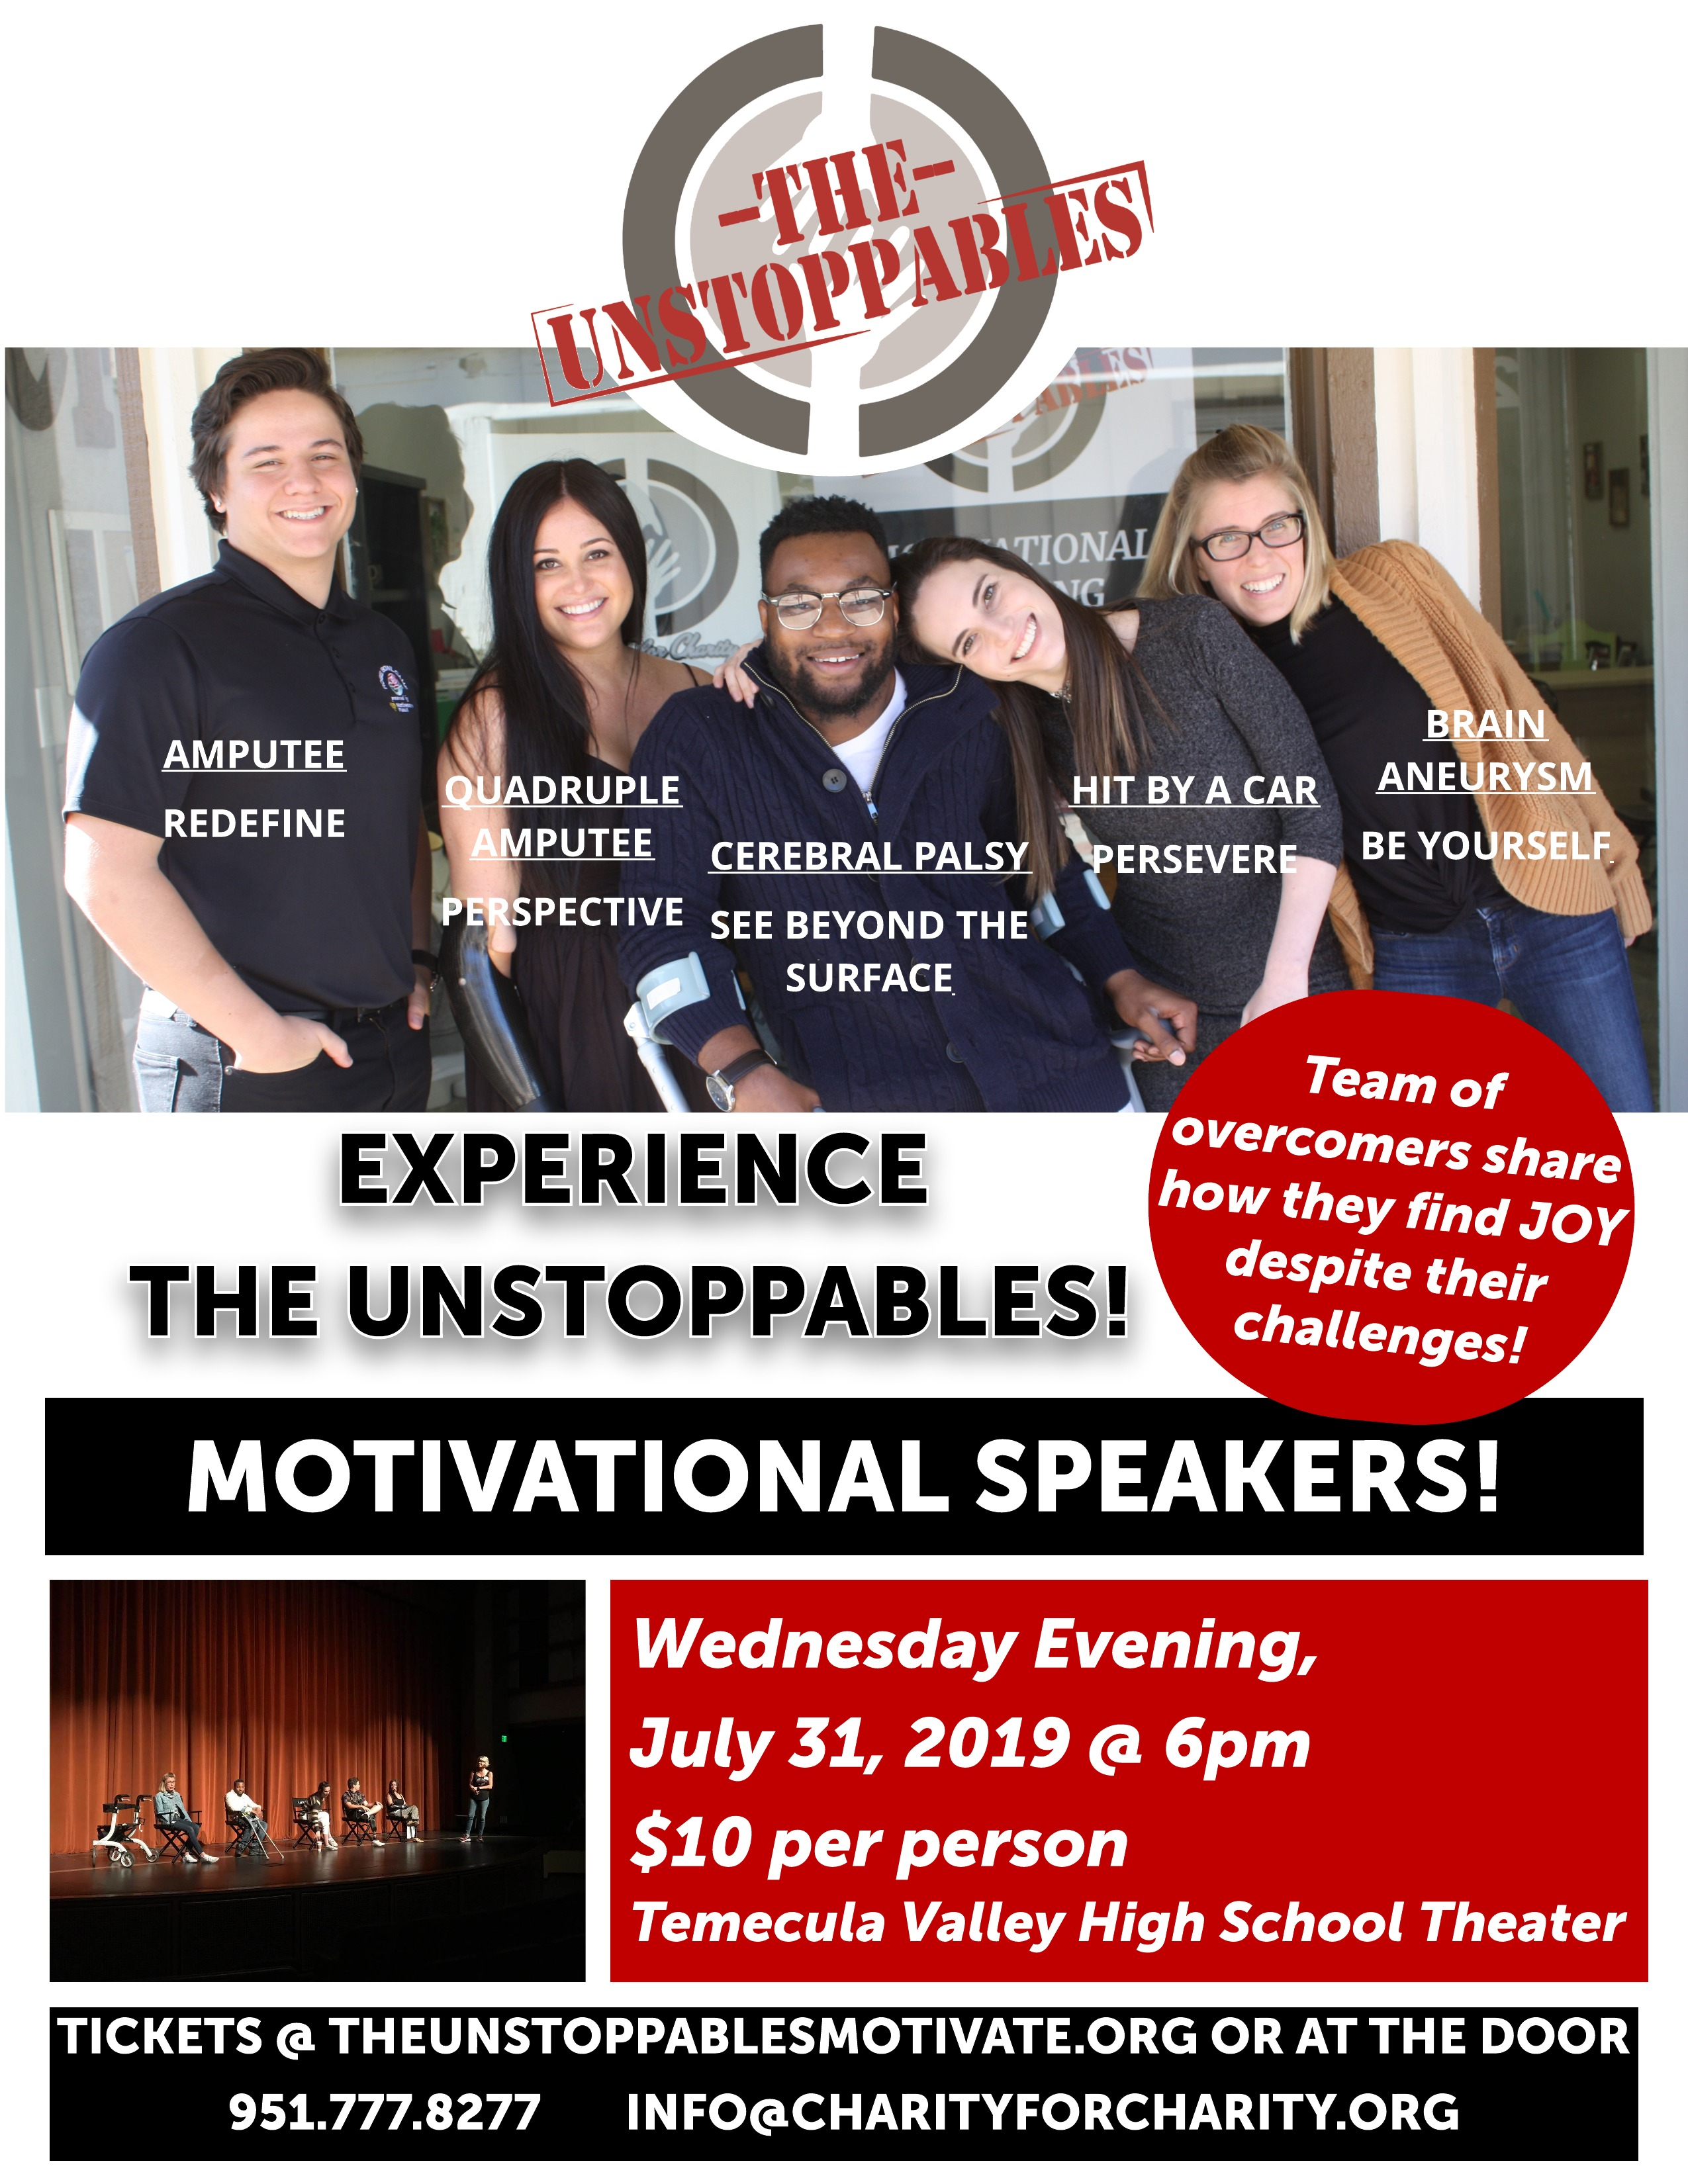 The Unstoppables - Motivated Speakers @ Temecula Valley High School Theatre